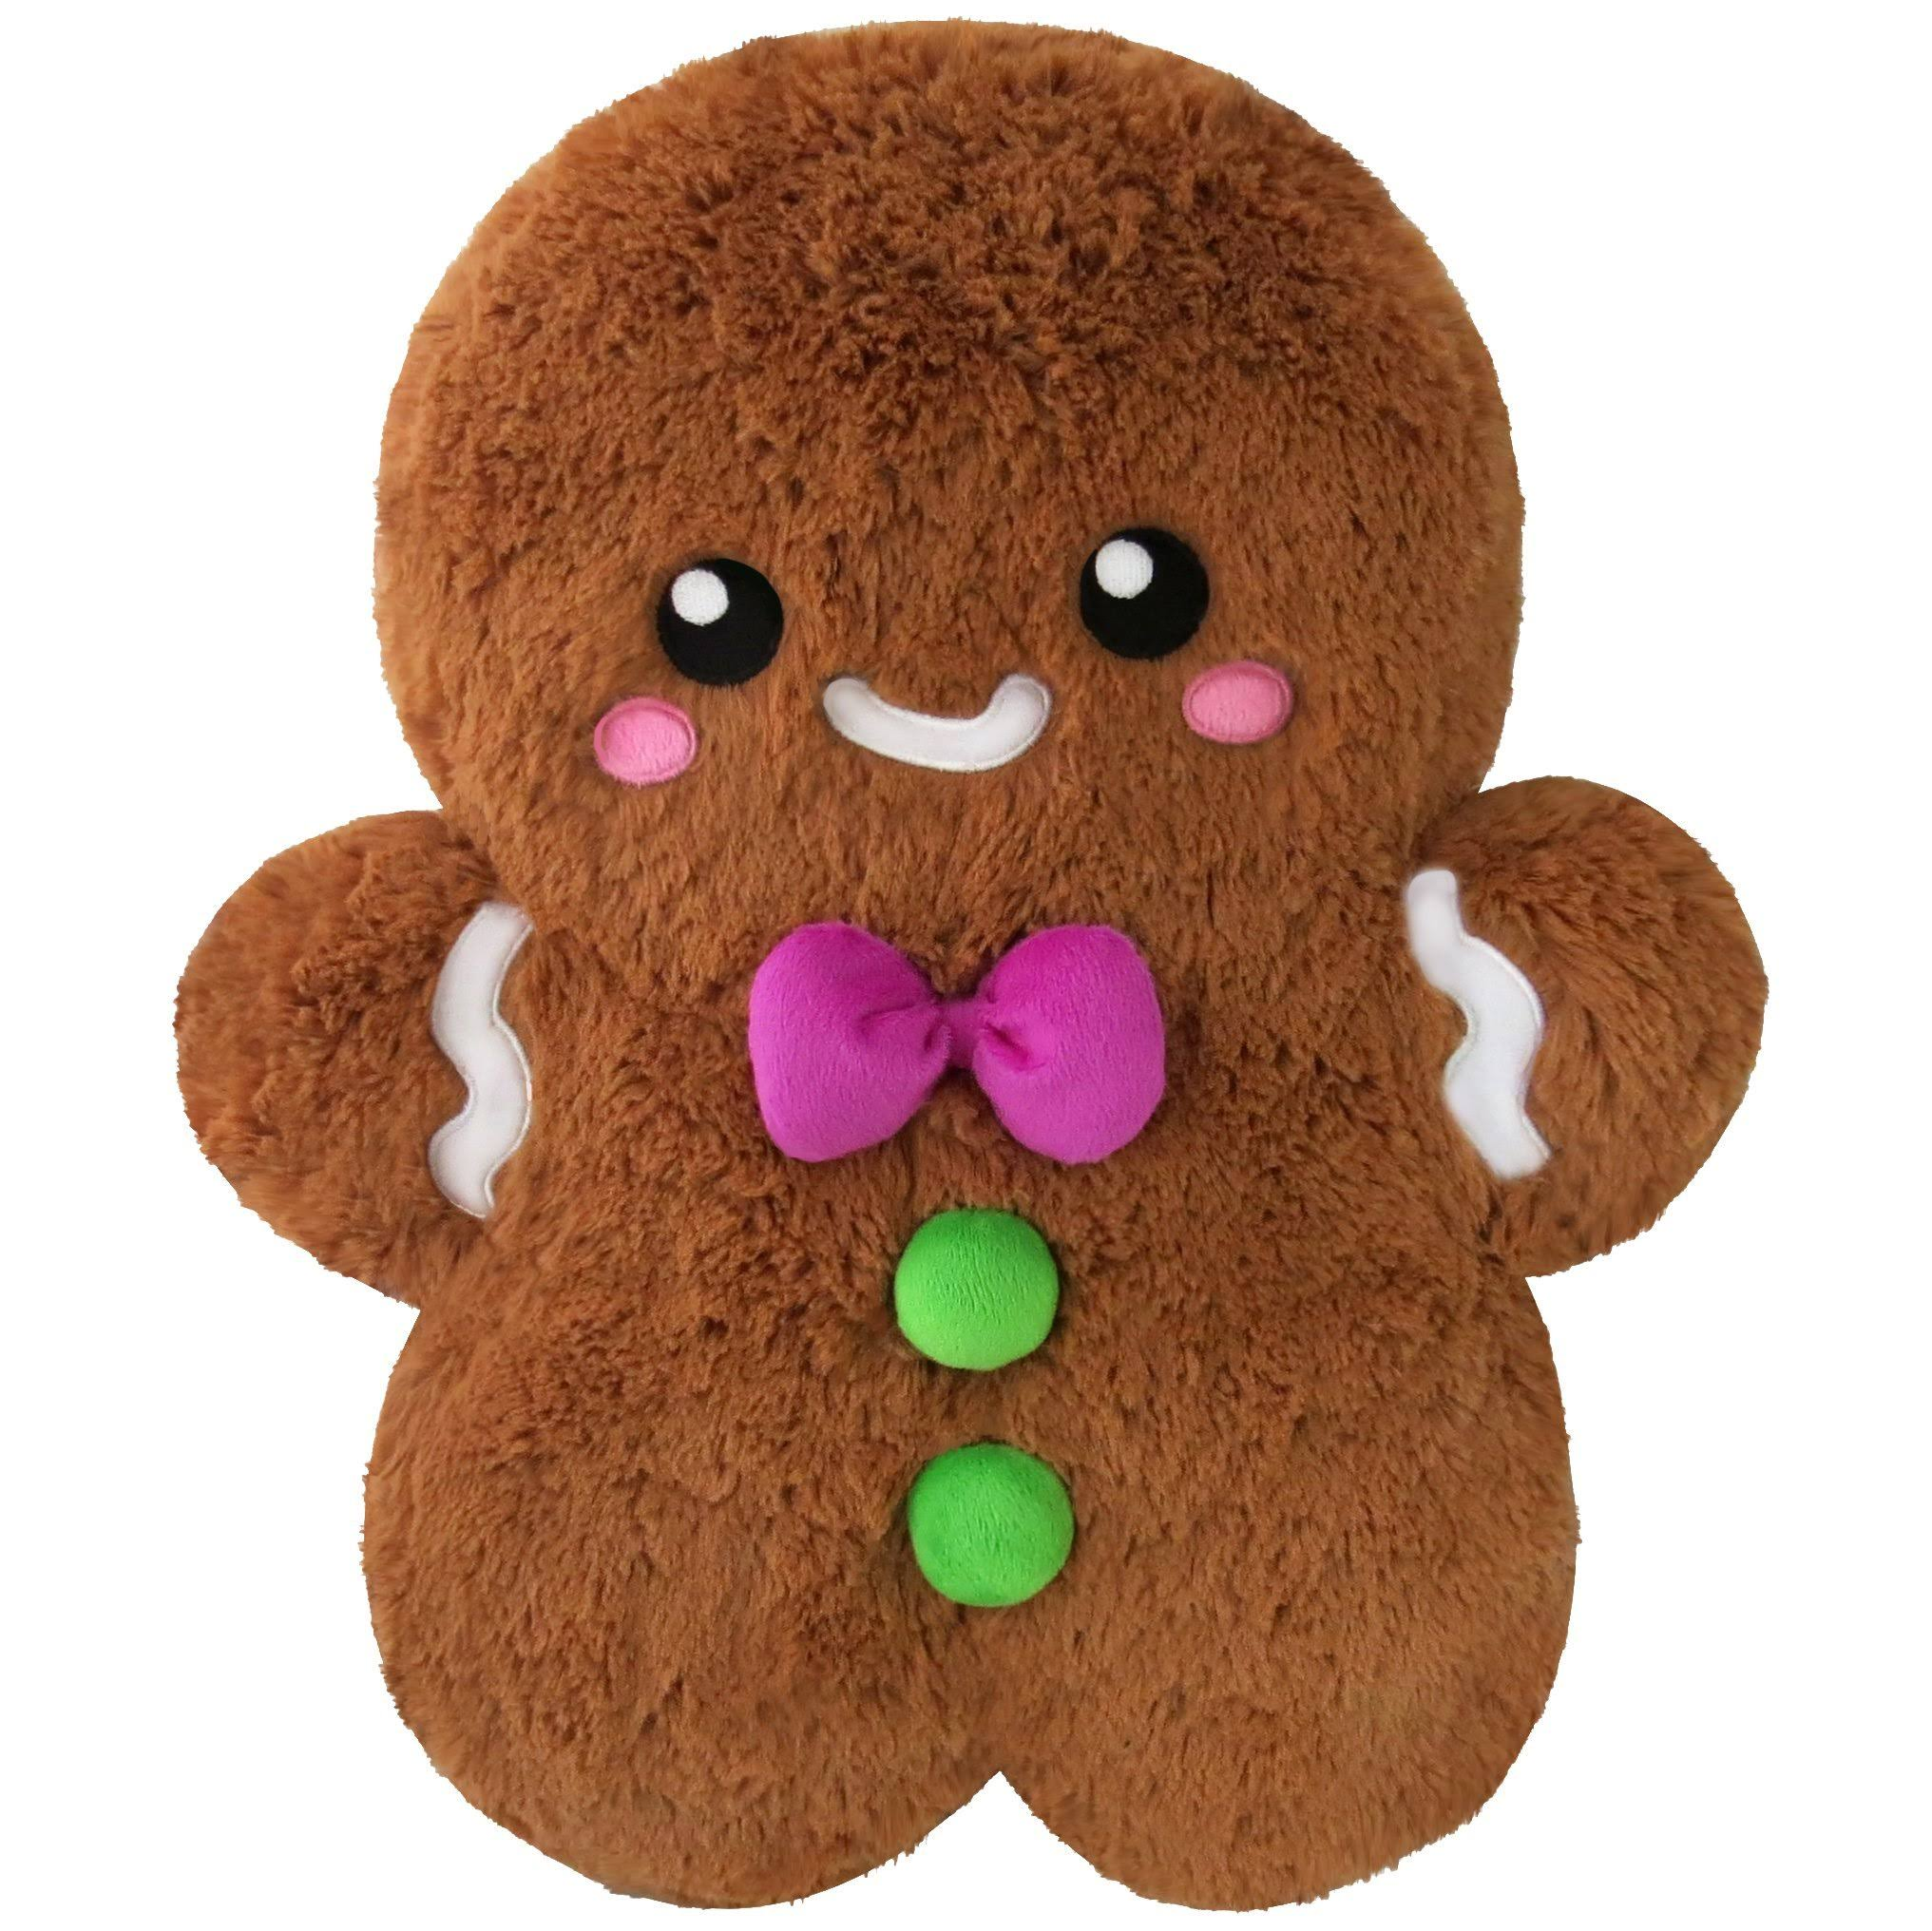 Squishable Comfort Food Gingerbread Man Stuffed Toy - 15""